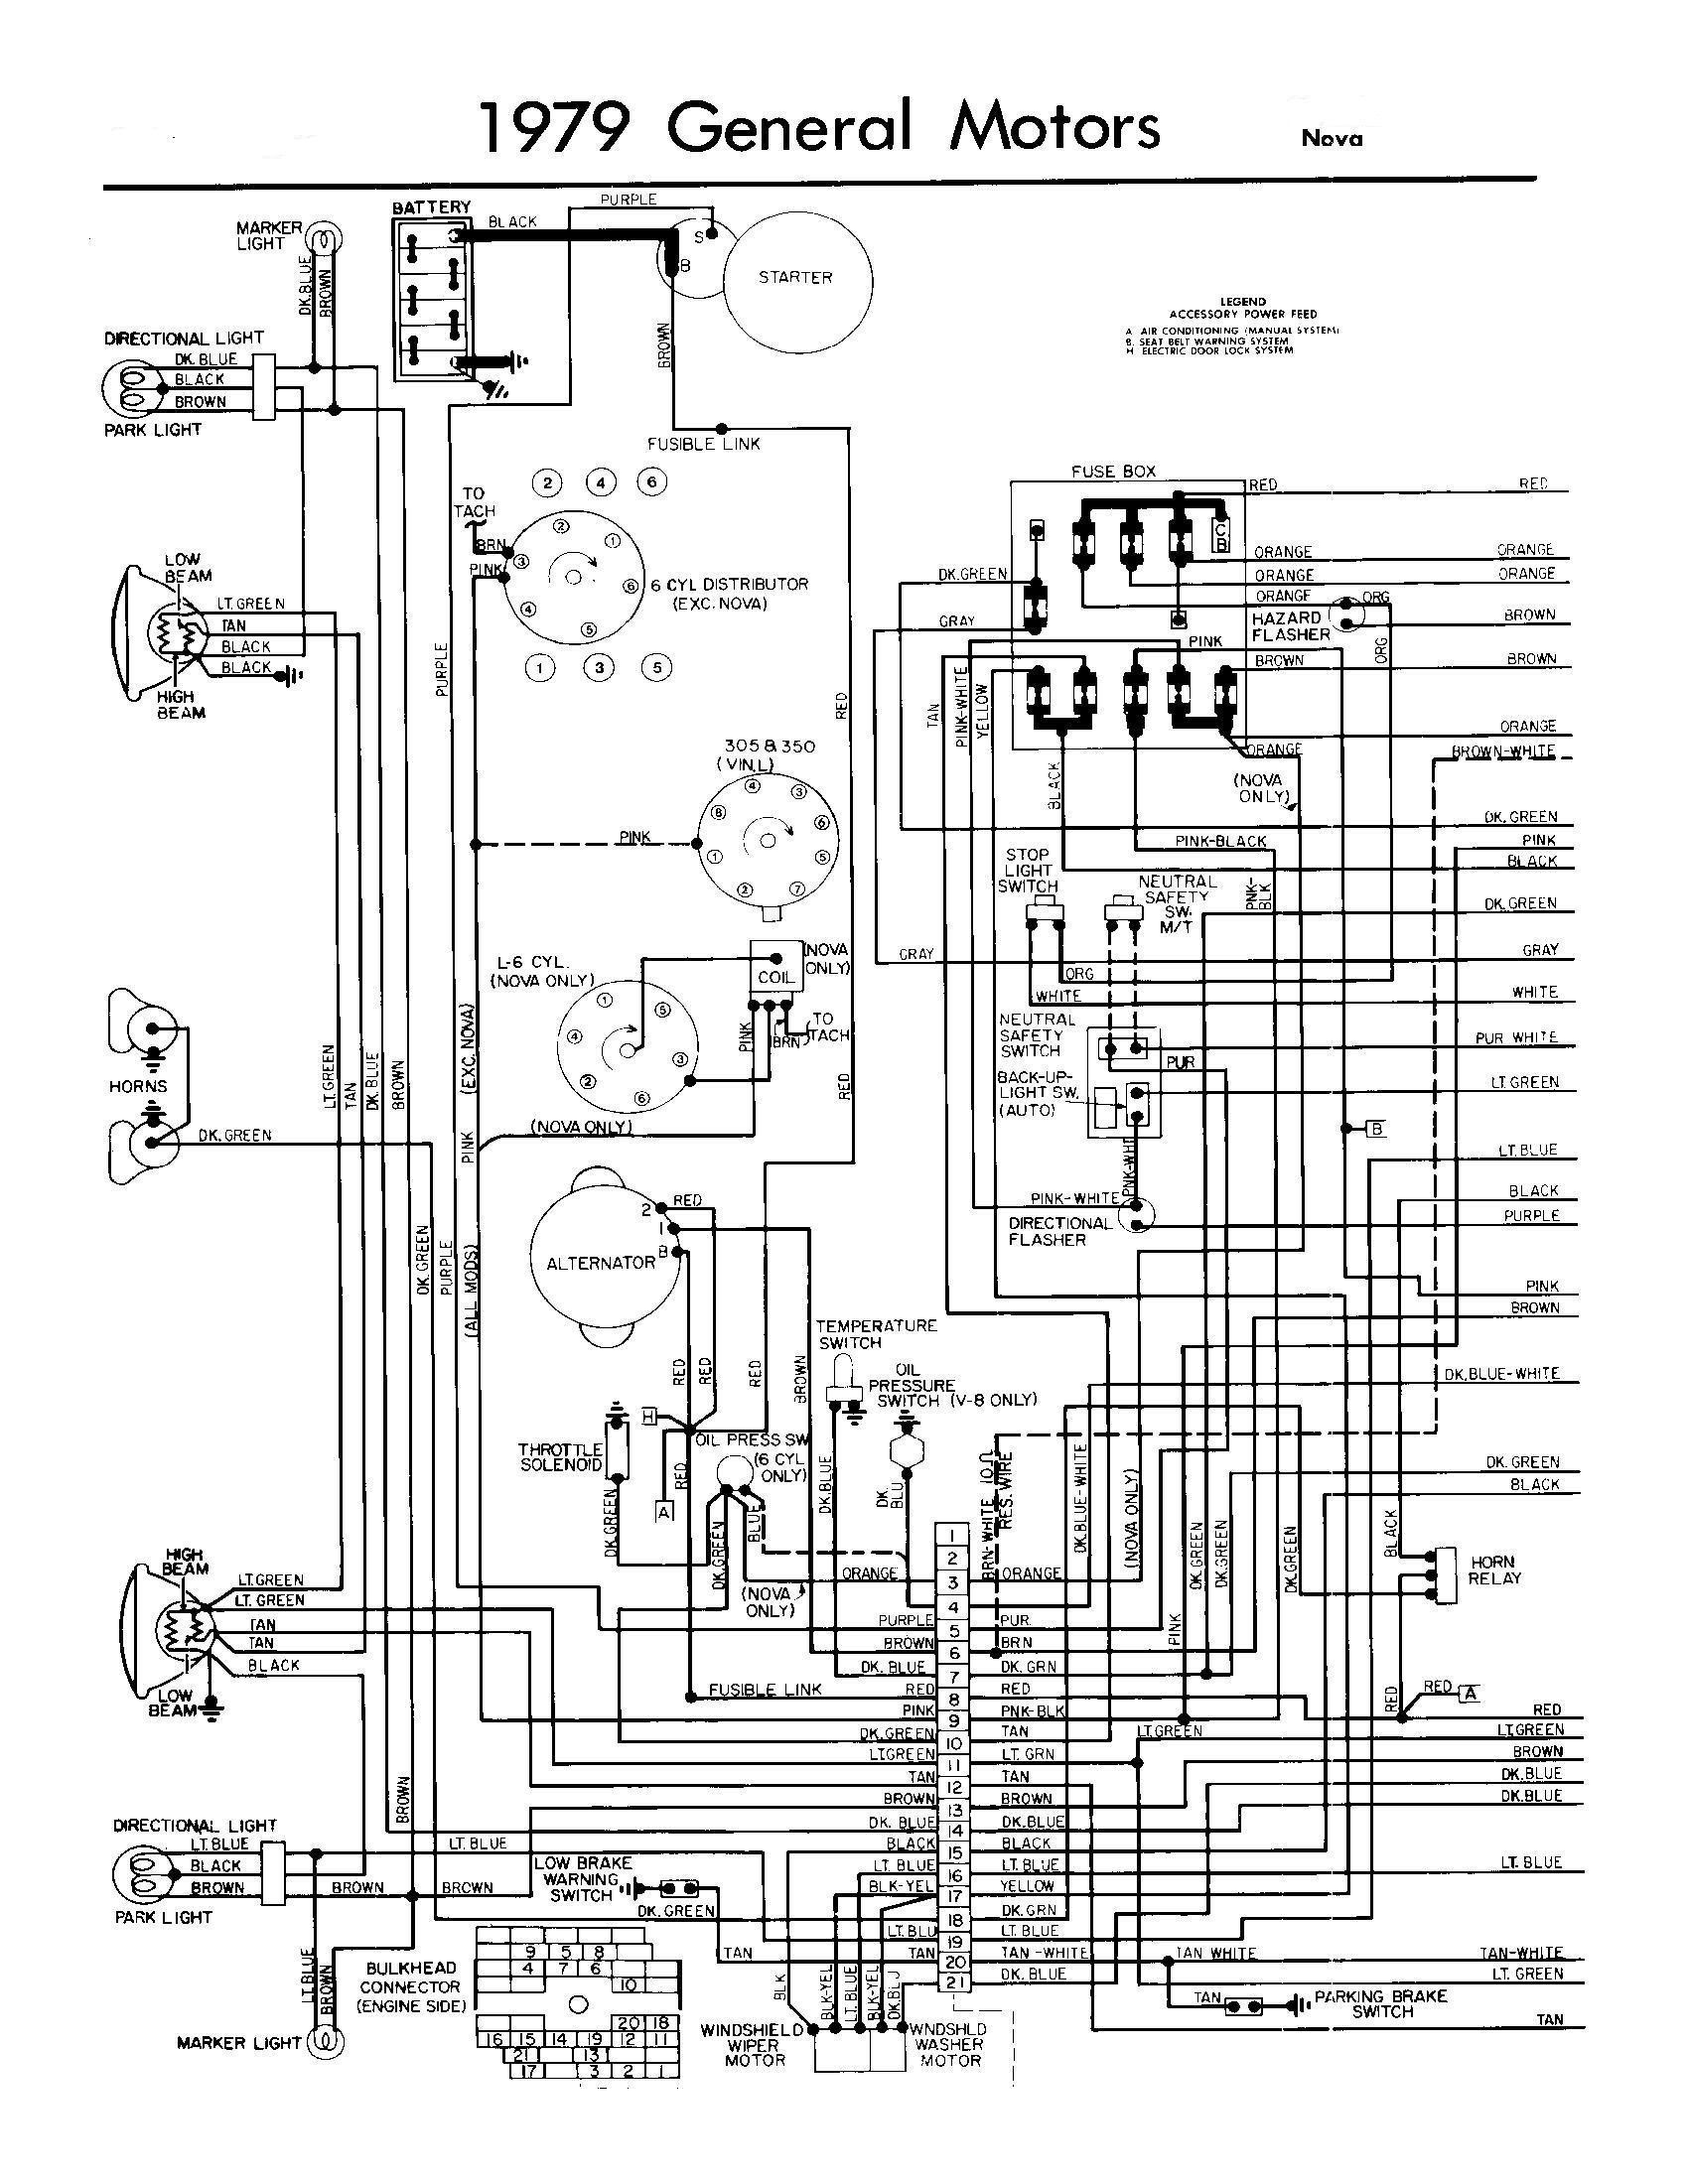 2002 Bluebird Bus Wiring Diagram Schematic Books Of Schematics Electrical 1986 Trusted Rh Dafpods Co